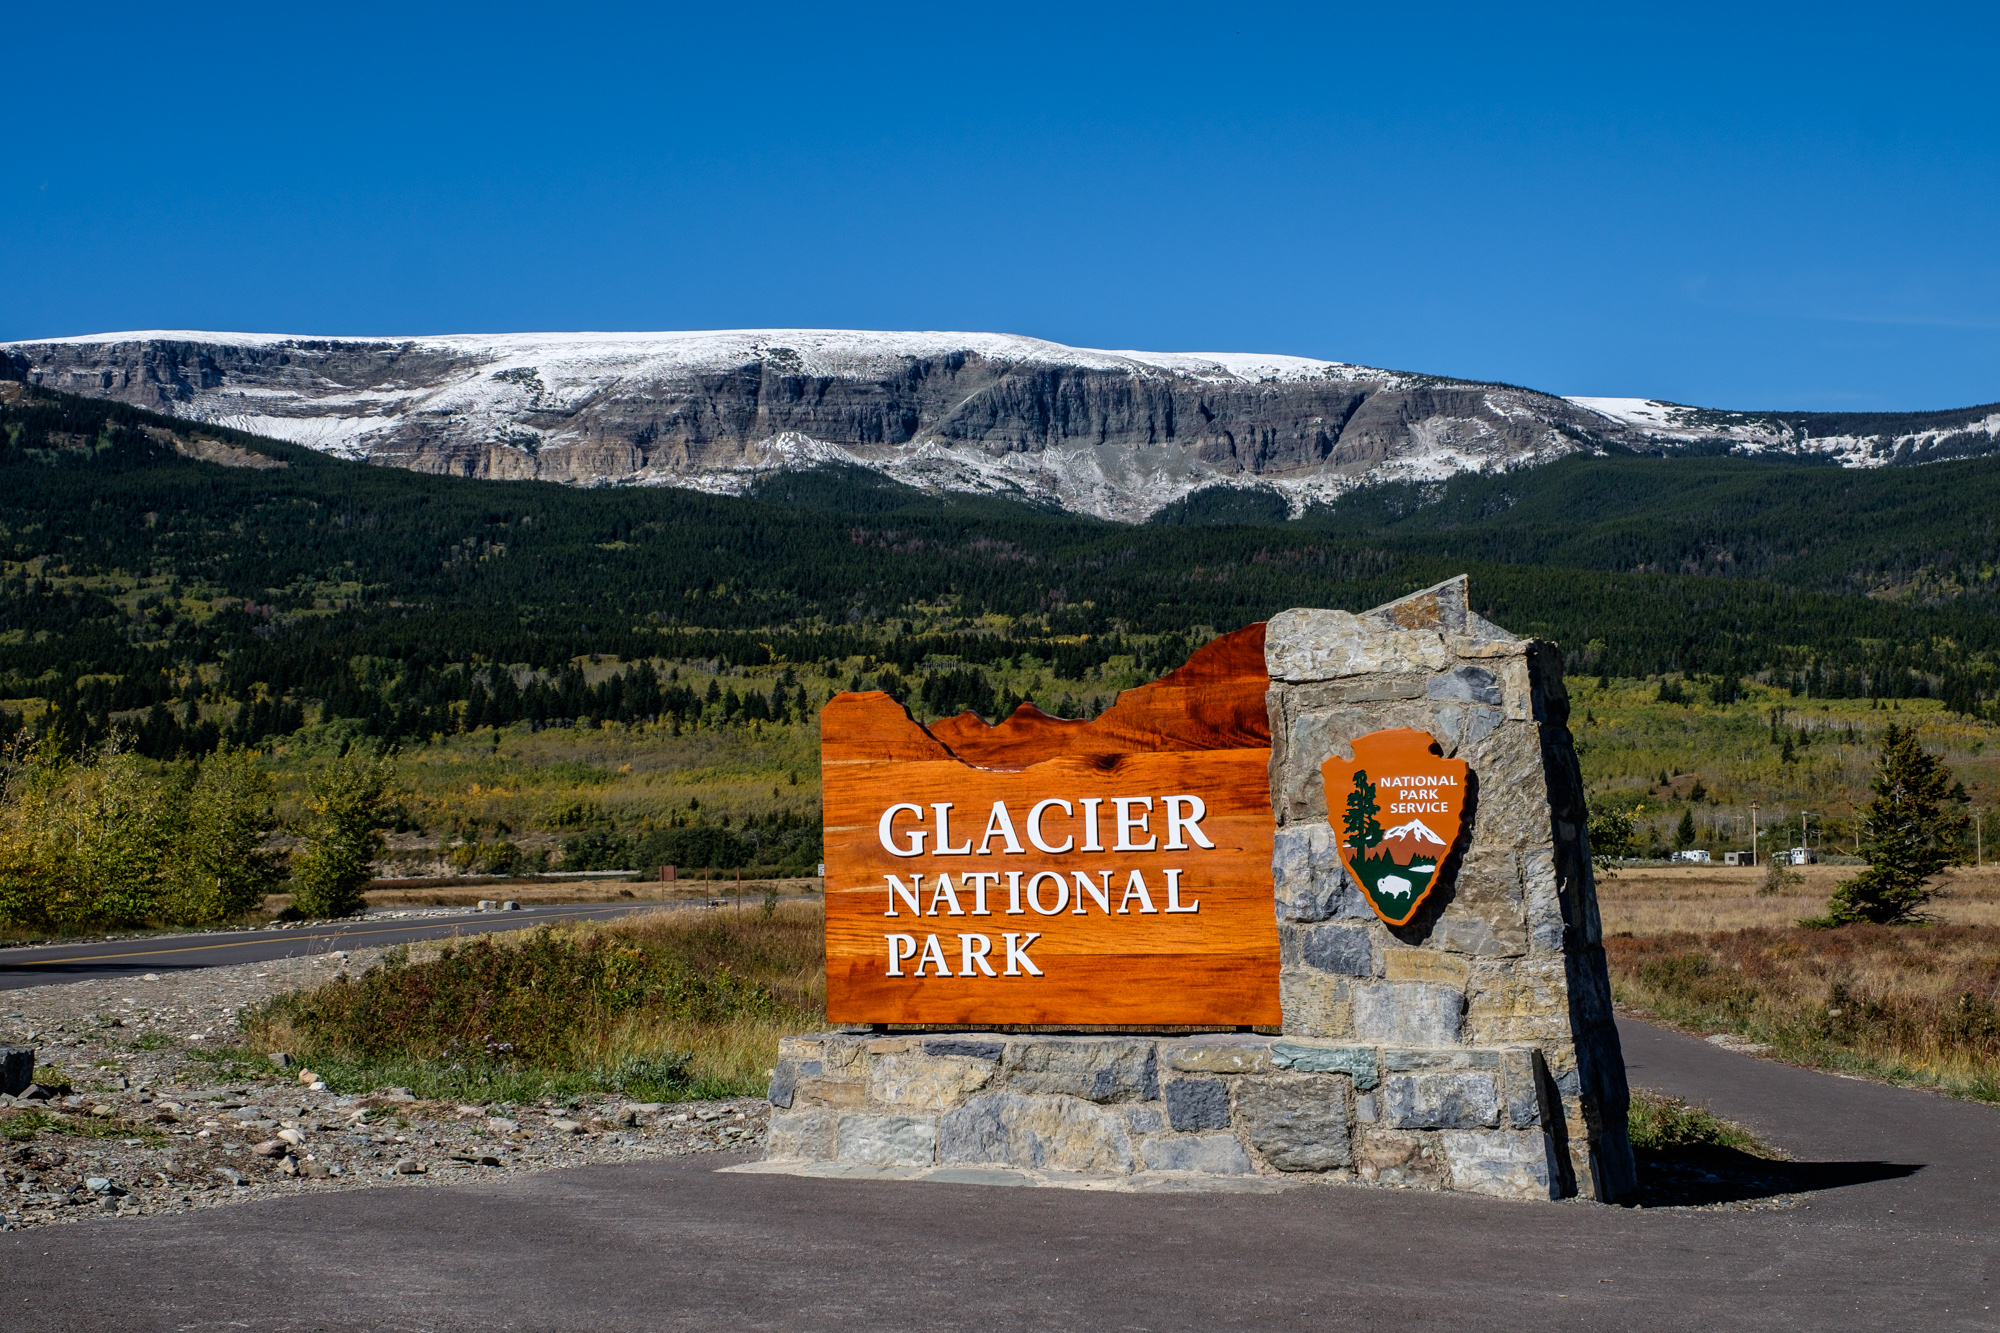 We arrived to Glacier National Park in late fall, with still enough time to enjoy the autumn leaves.